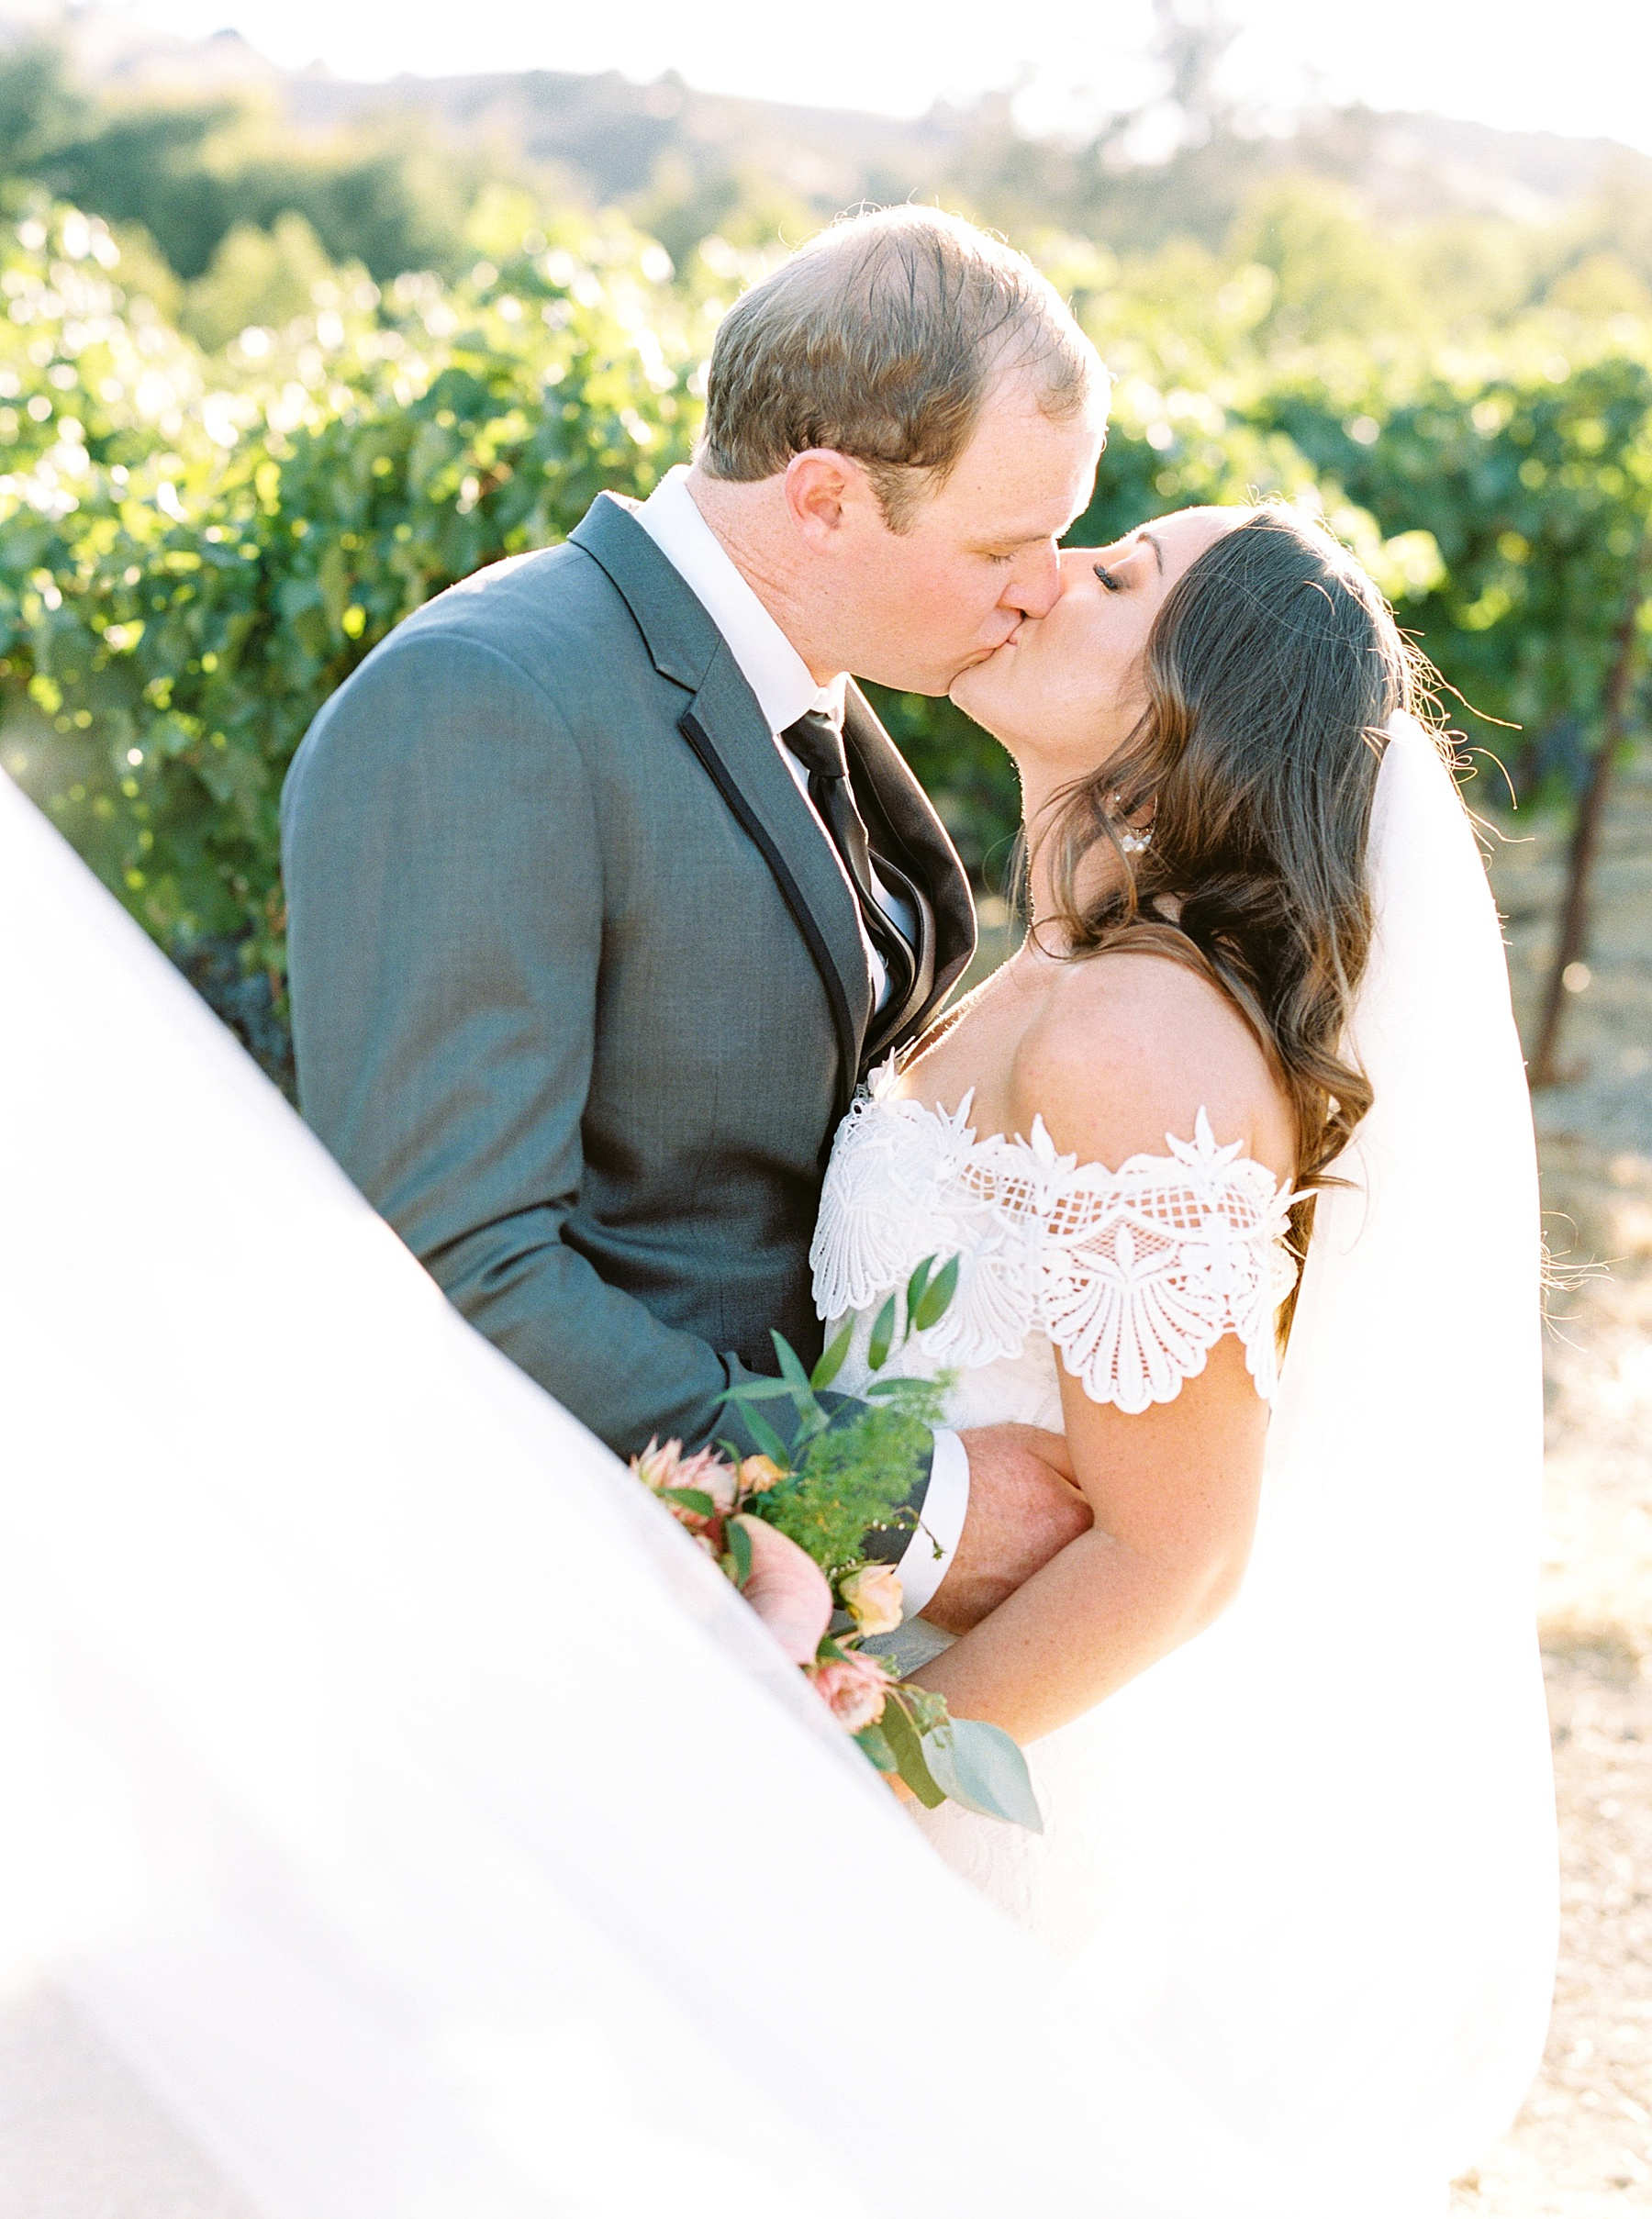 Wente Wedding with A Tropical Color Palette - Ashley & Mike - Featured on Inspired by This - Ashley Baumgartner_0008.jpg